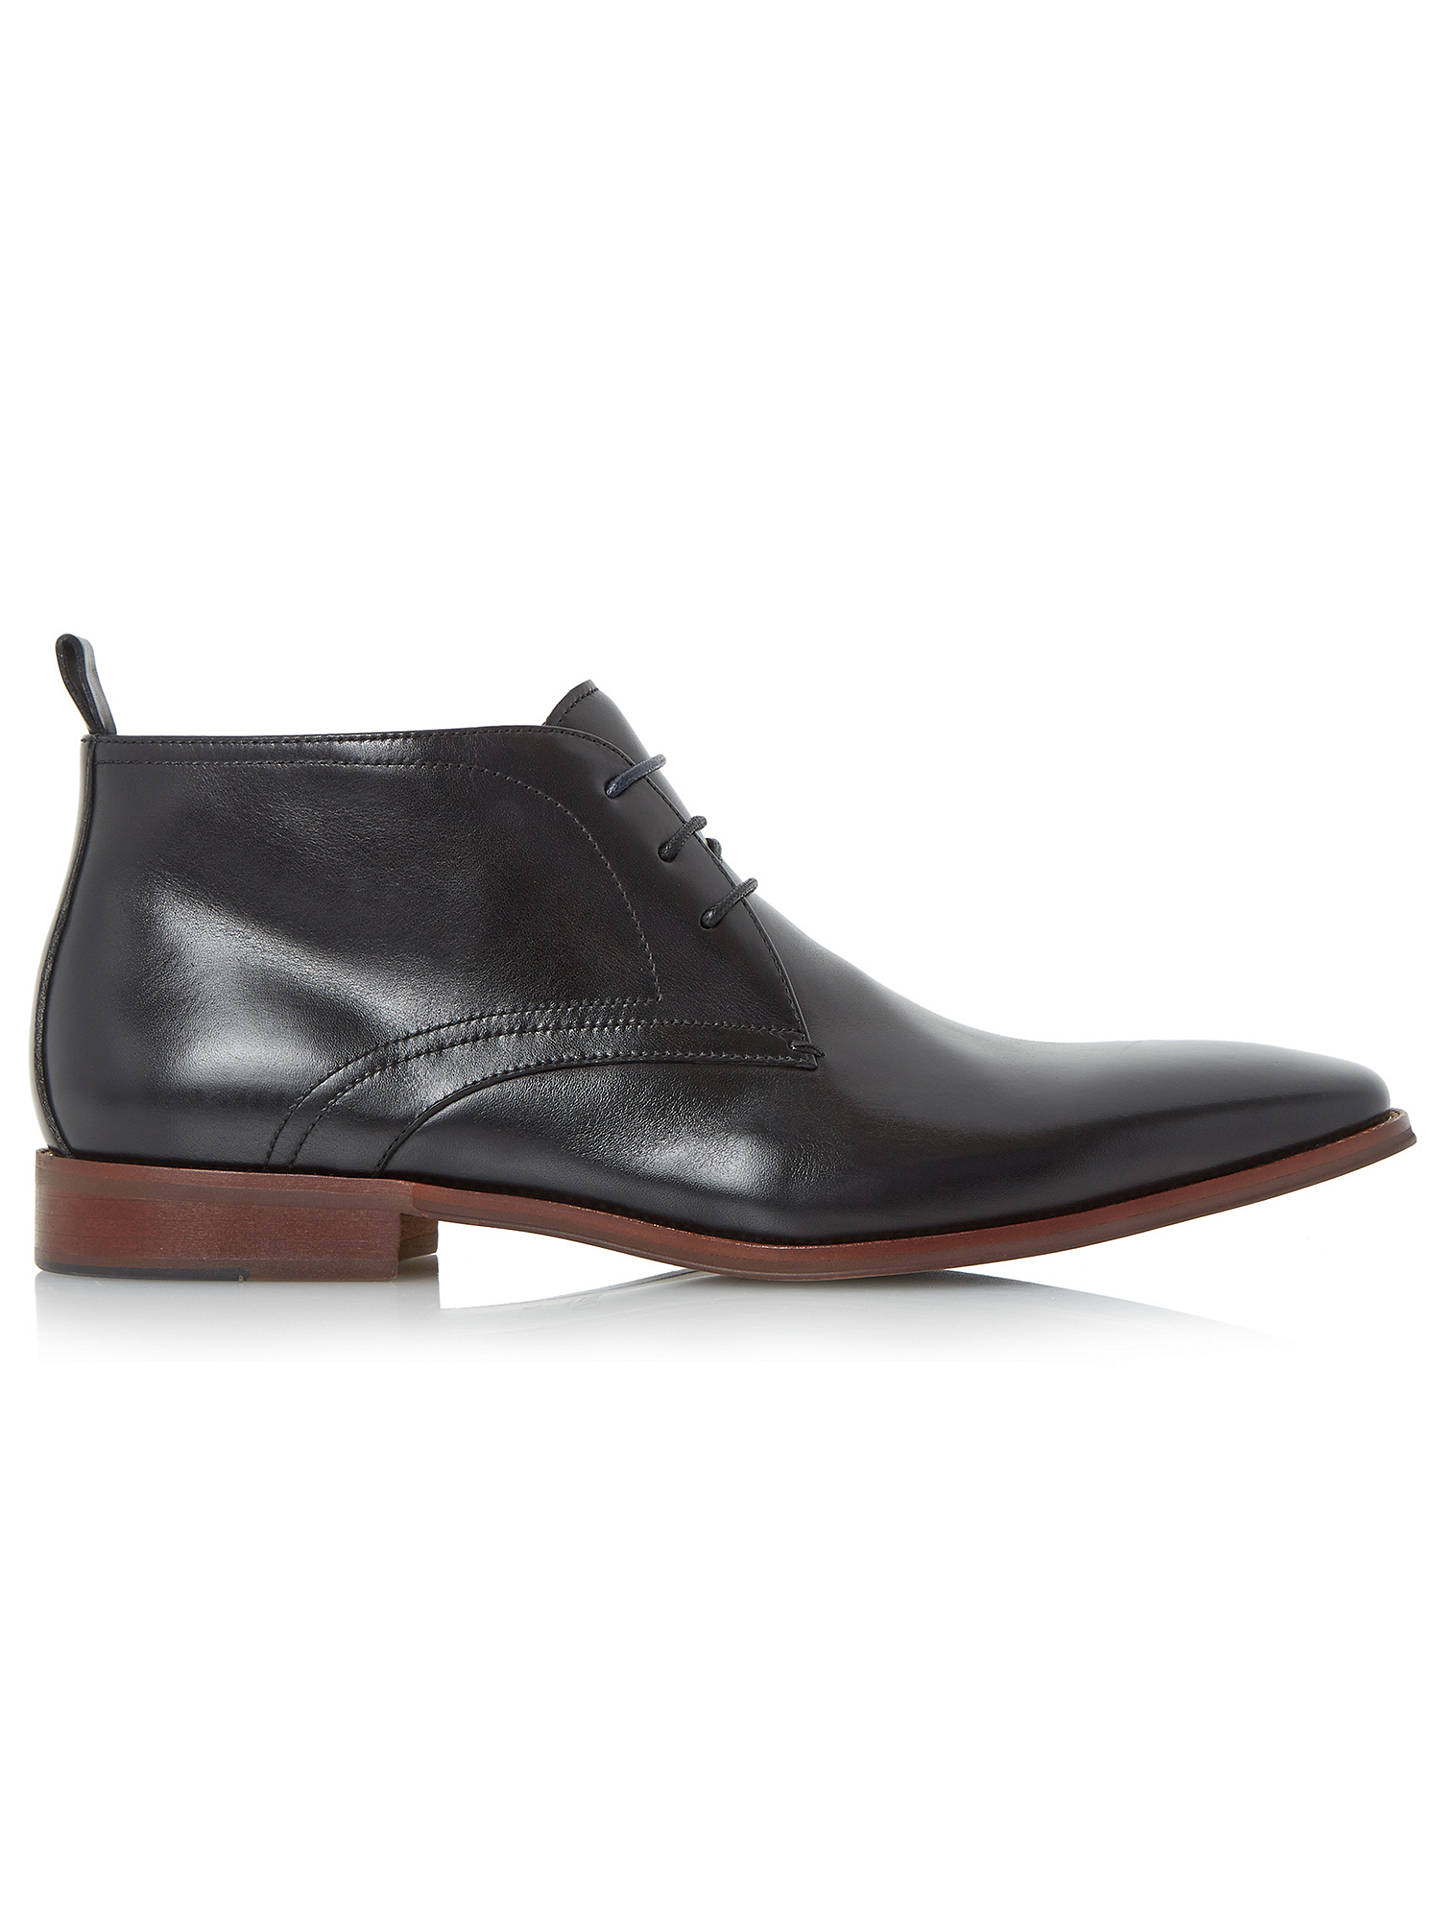 MURRAY Formal Chukka Boot brown | Dune London